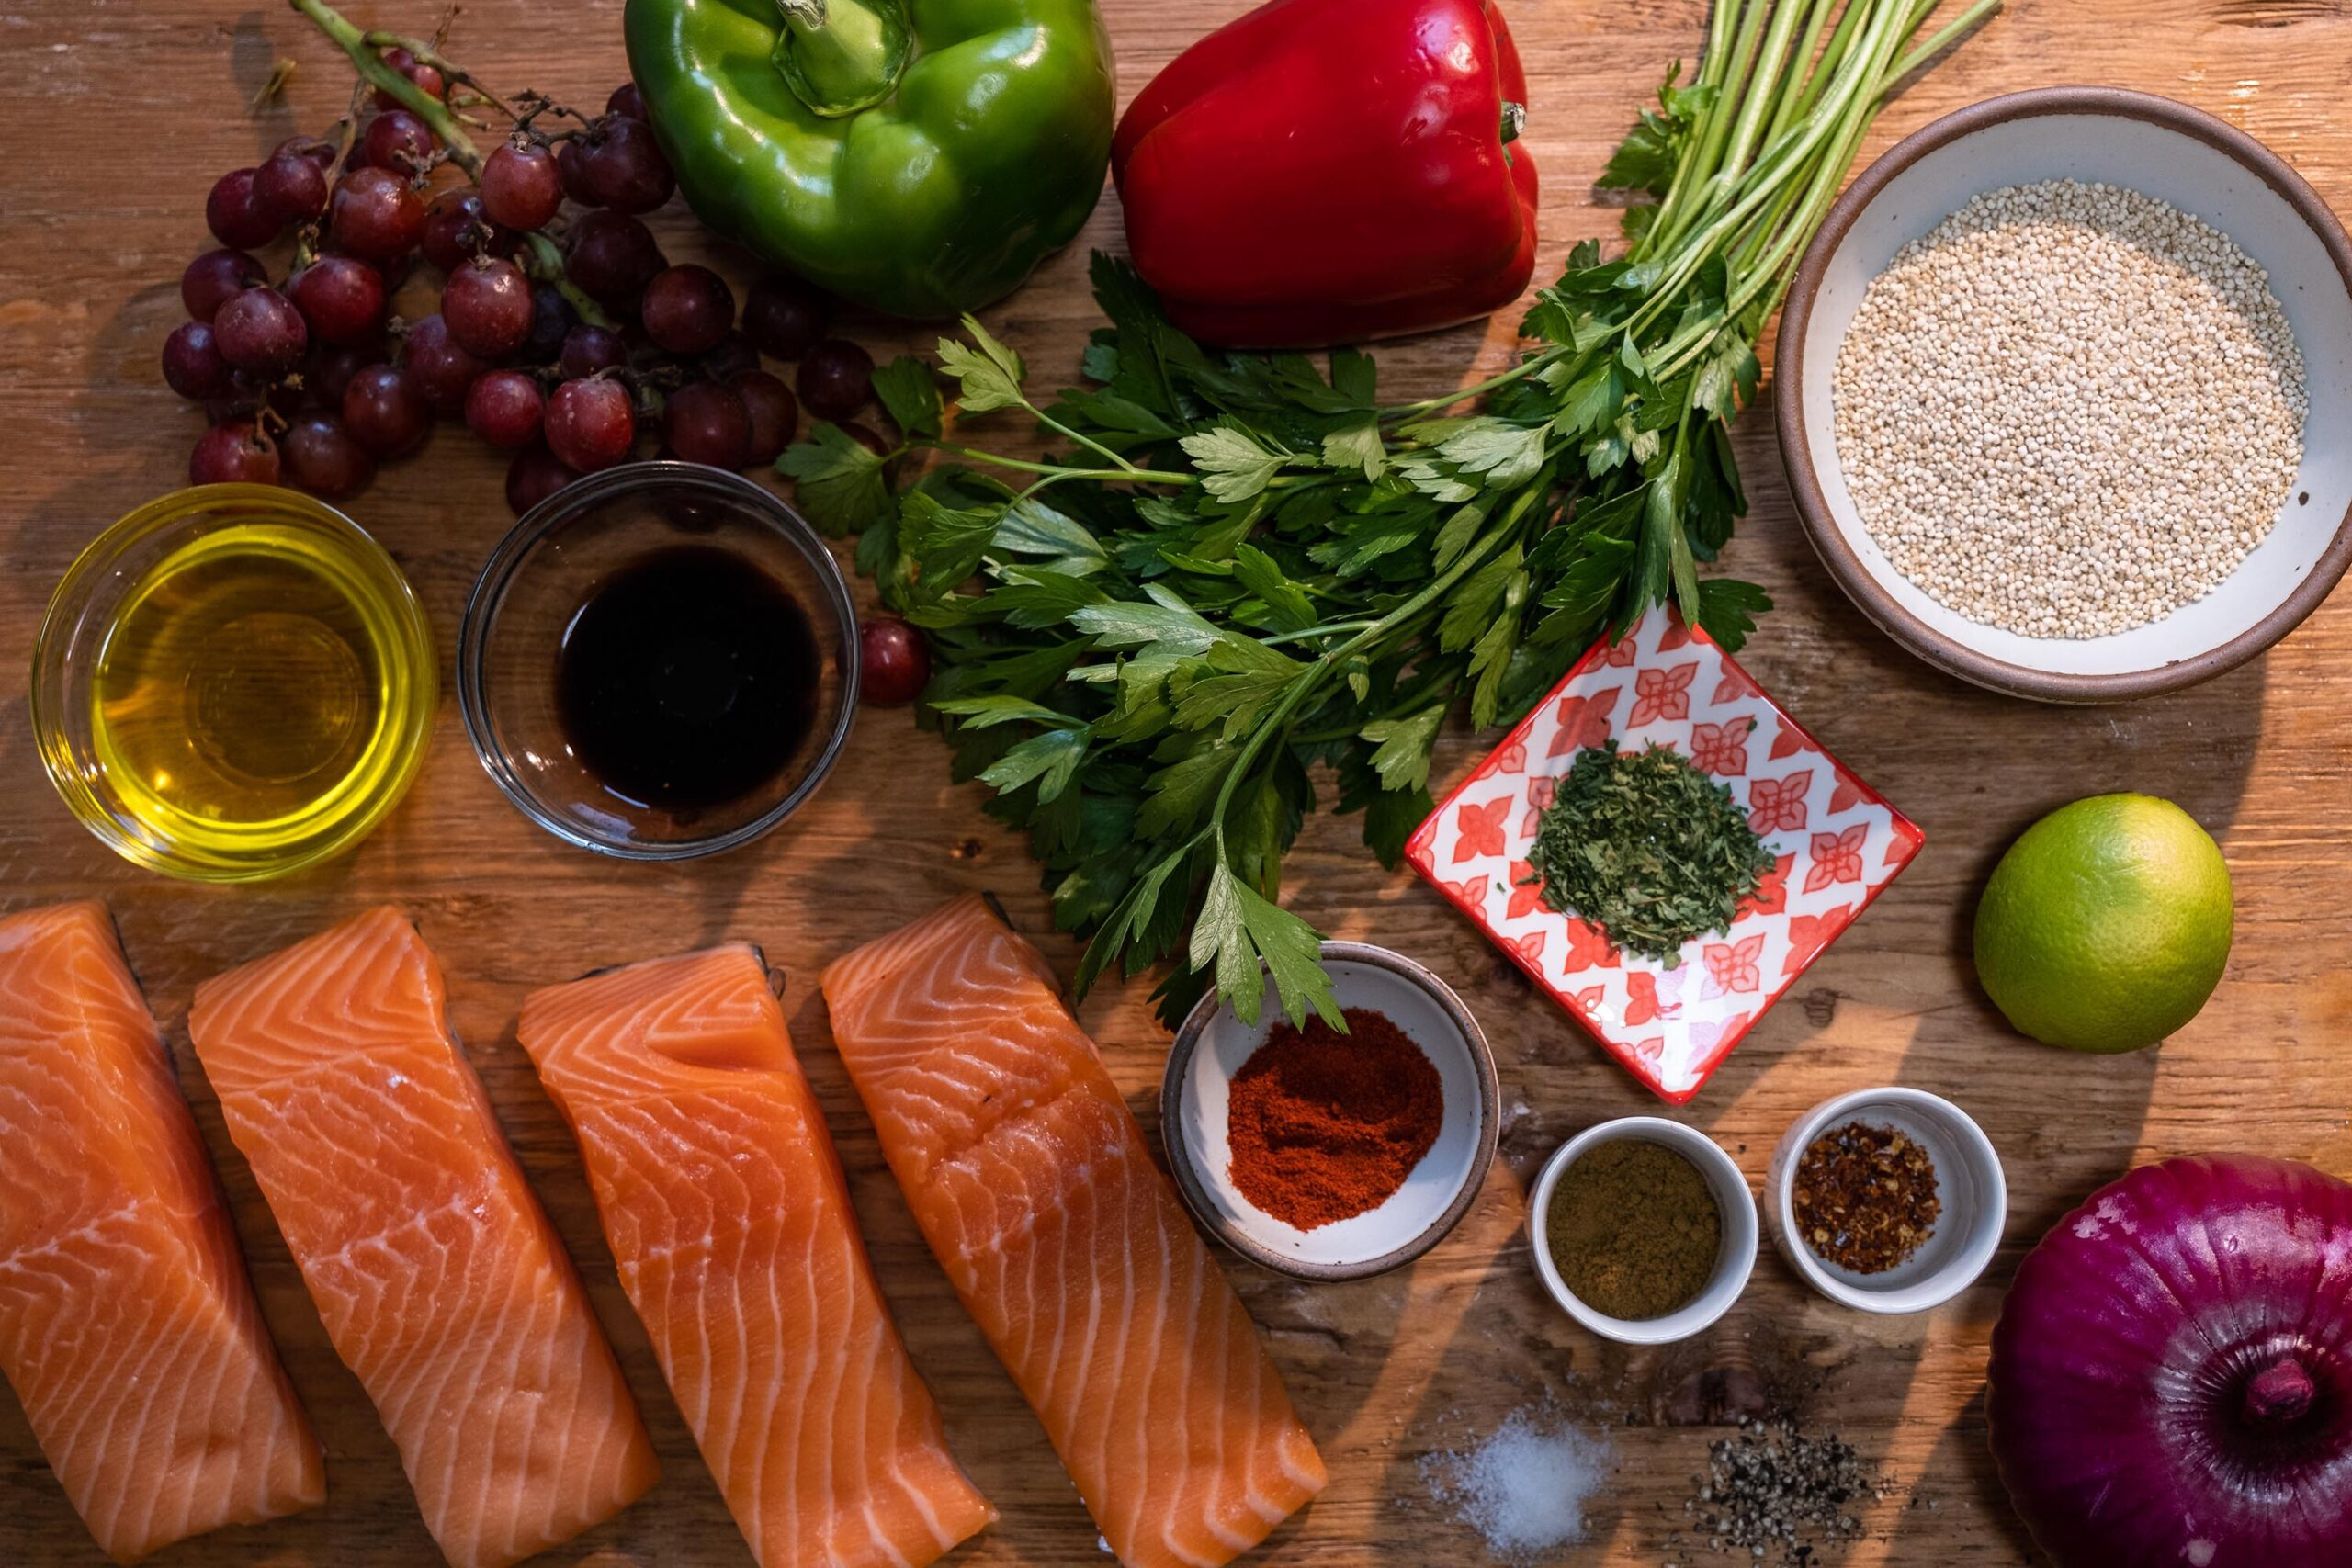 <i>Heather Fulbright/CNN</i><br/>Mediterranean-inspired grocery staples include heart-healthy fish like salmon